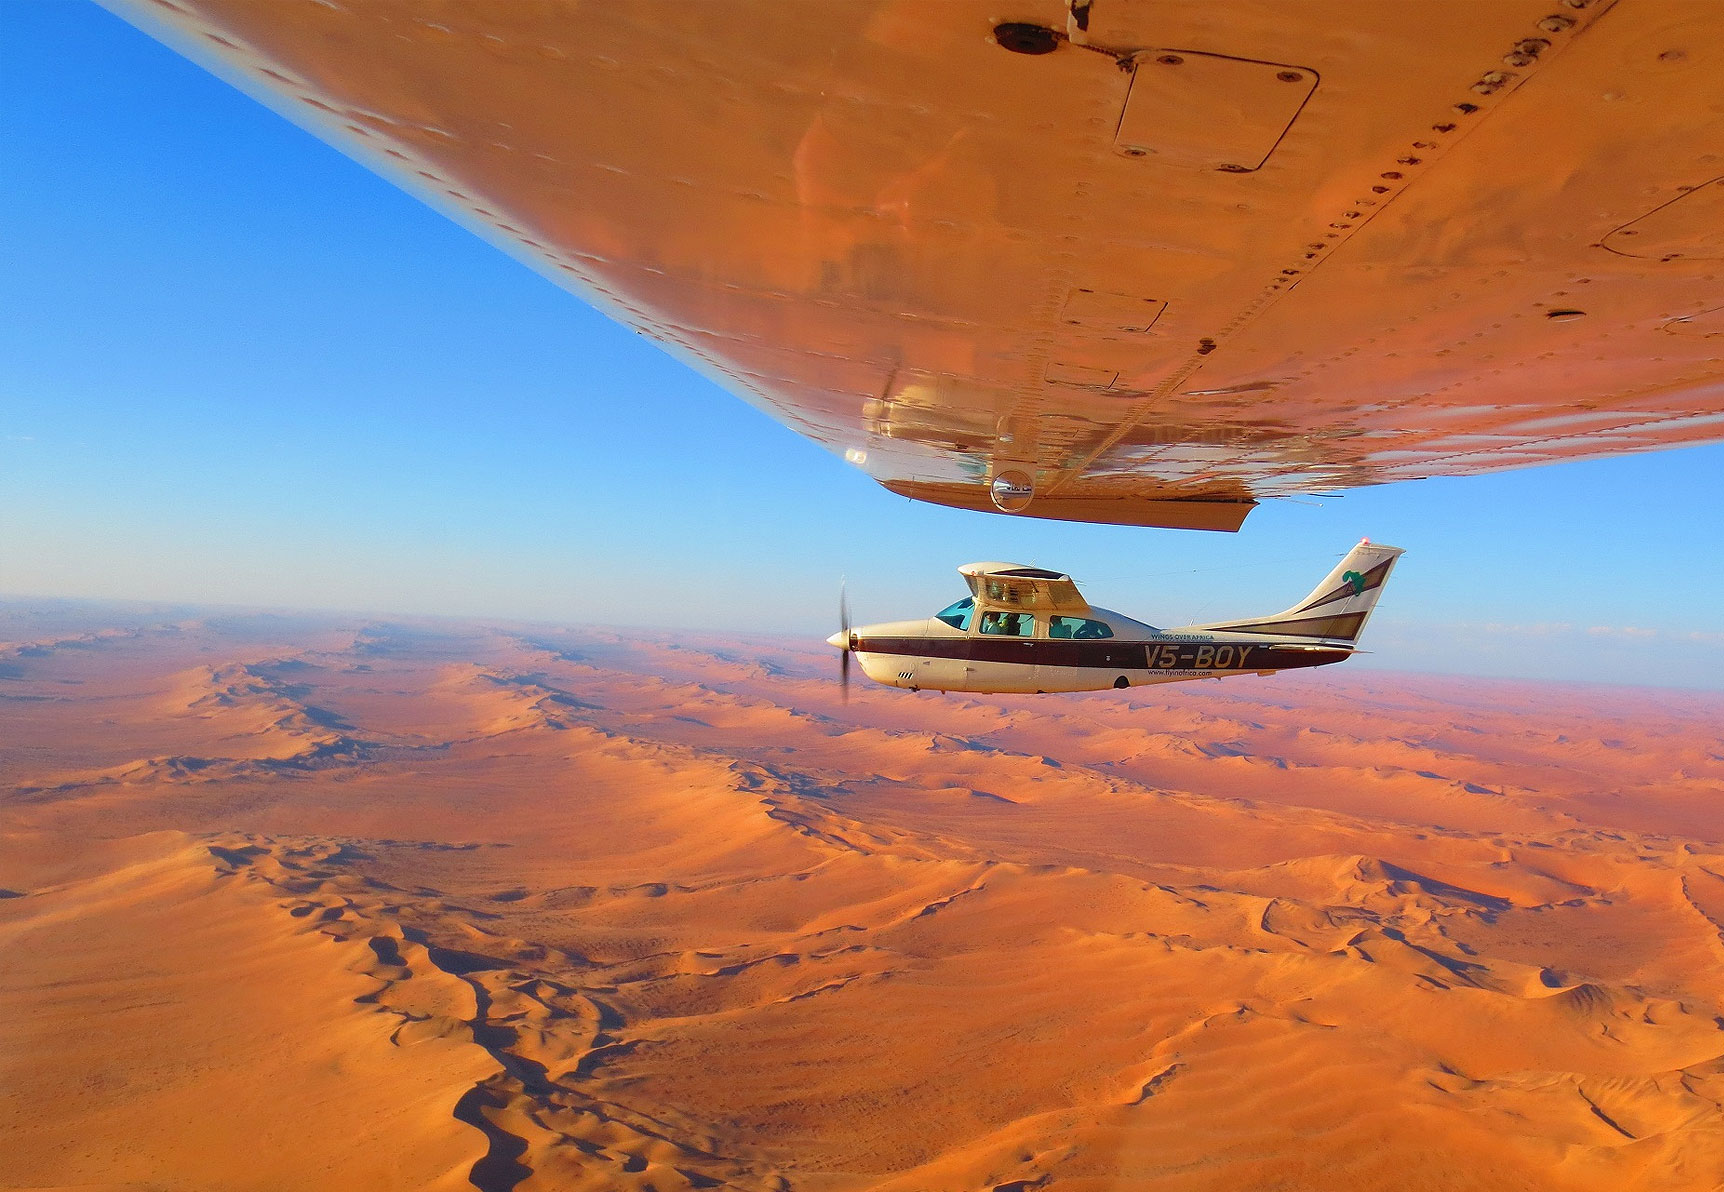 Top 10 Things To Do in Namibia inline image 5bfd0ba9ed30a